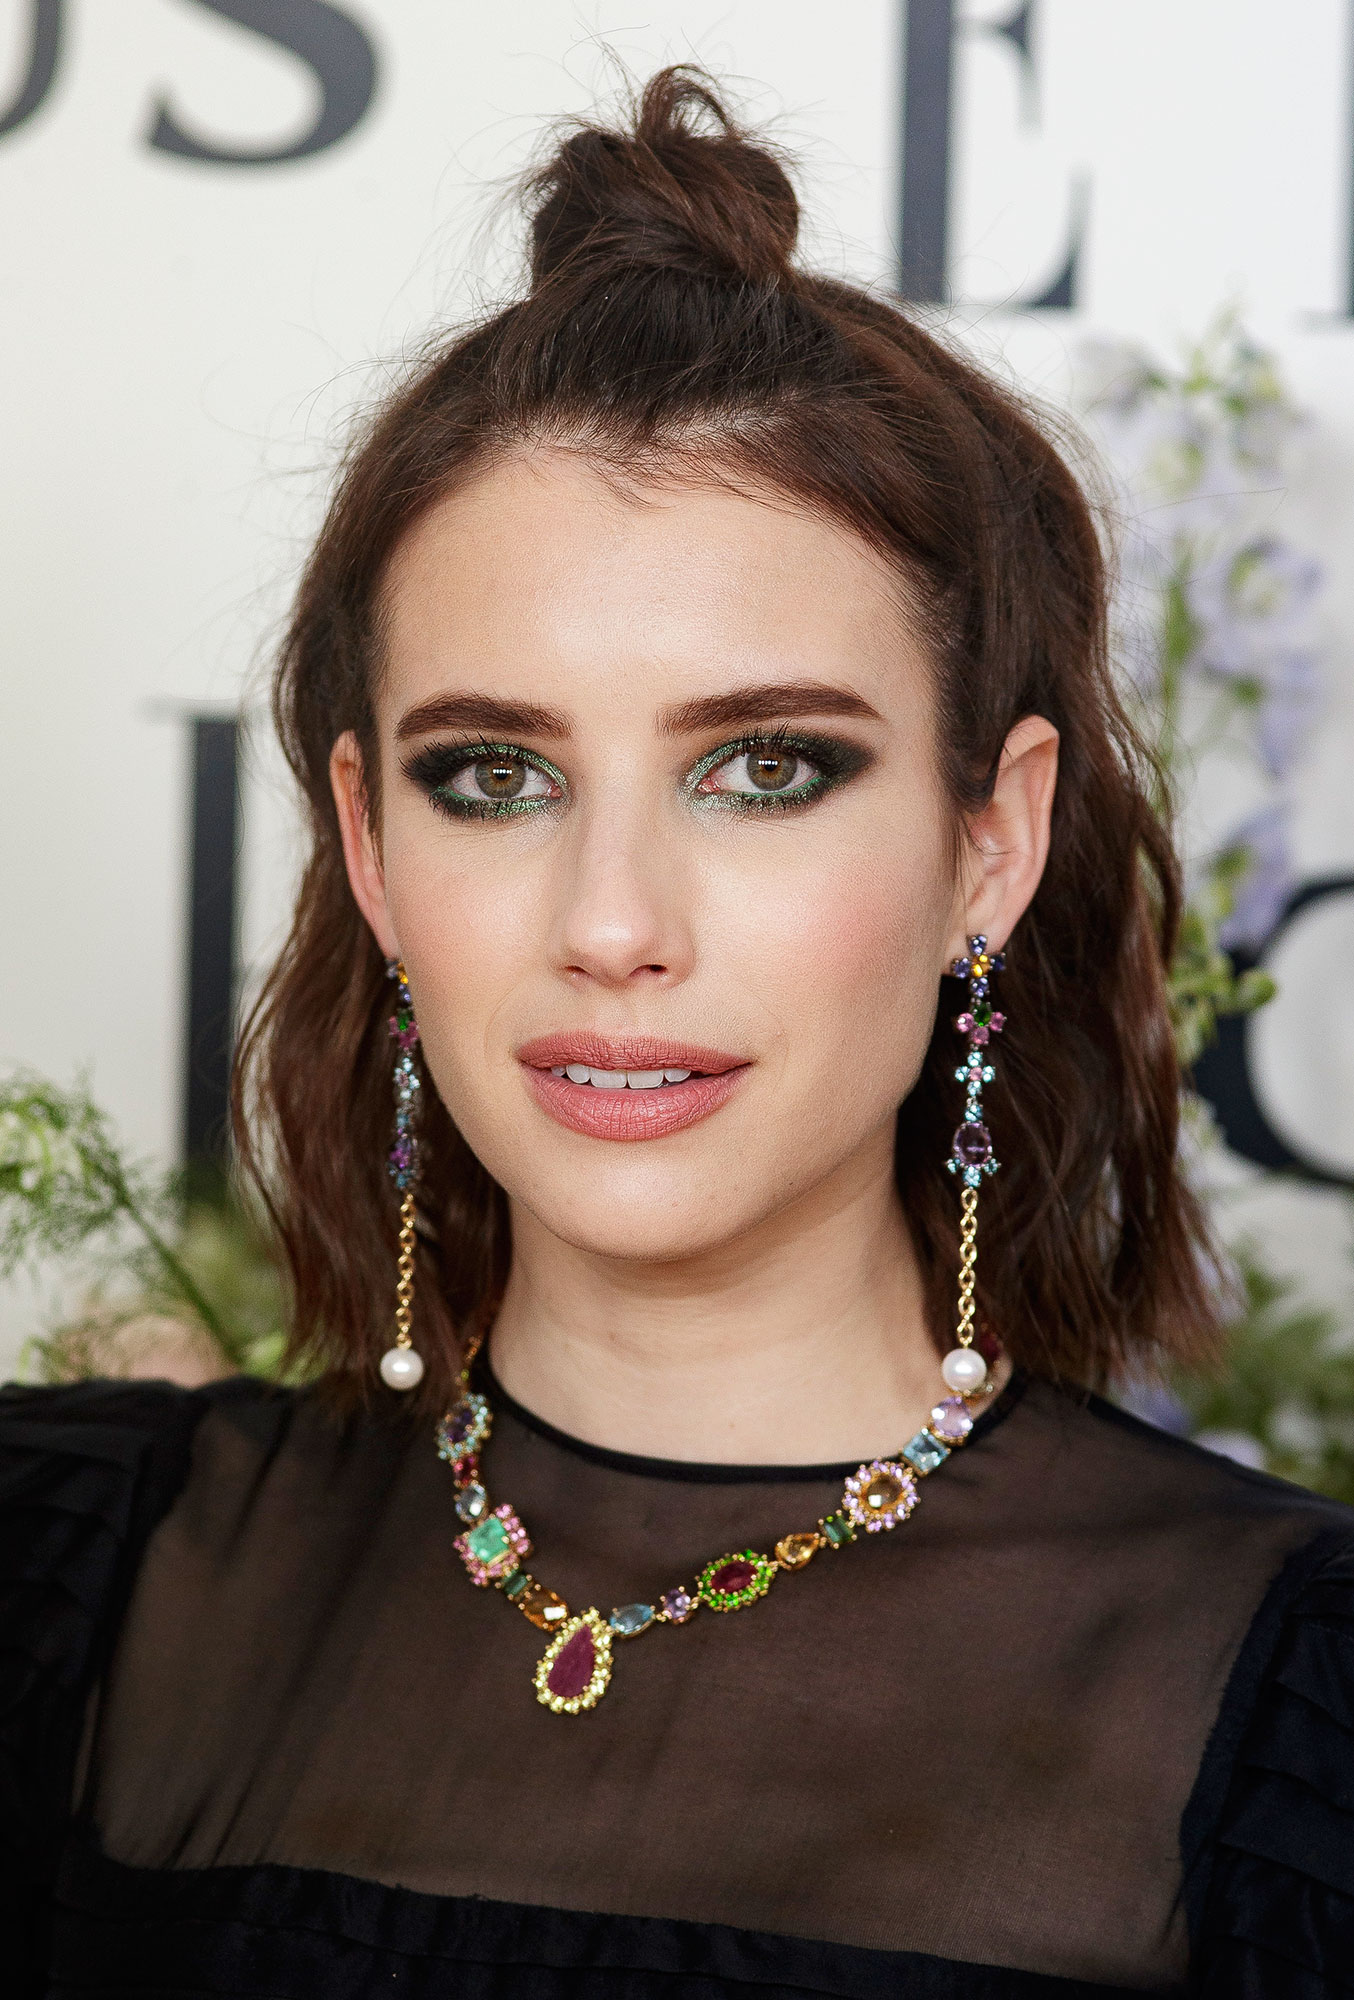 Emma Roberts' Half-Up Knot - The brunette beauty combined two trends in one with this wavy half-up, half-down topknot by mane woman Rebekah Forecast on Wednesday, April 3. Oh, and special shoutout to makeup artist Lisa Eldridge for that mesmerizing emerald eye.